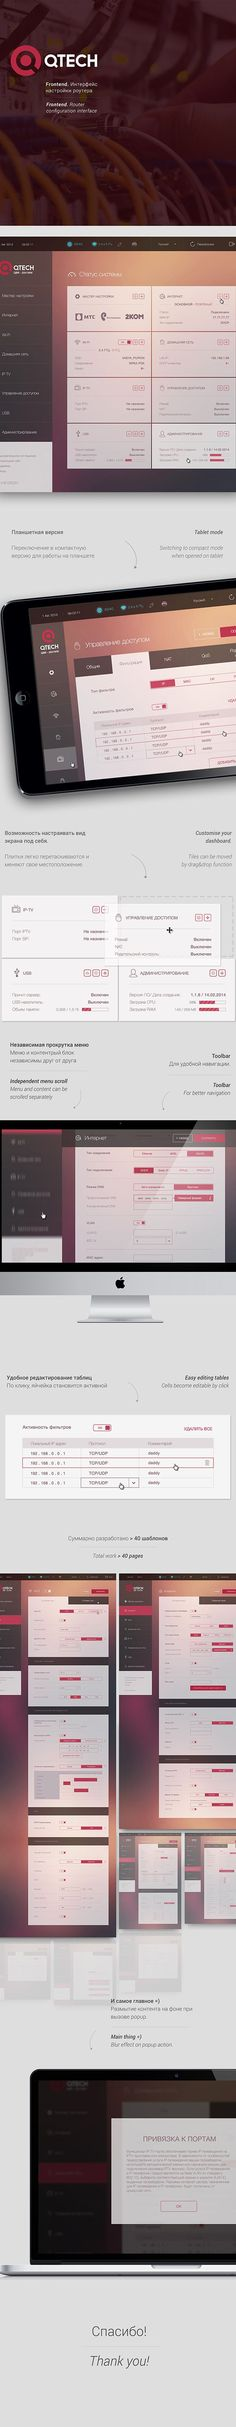 You'll notice the reappearance of dashboards, narrow fonts, semi-transparencies, and touch-first designs.